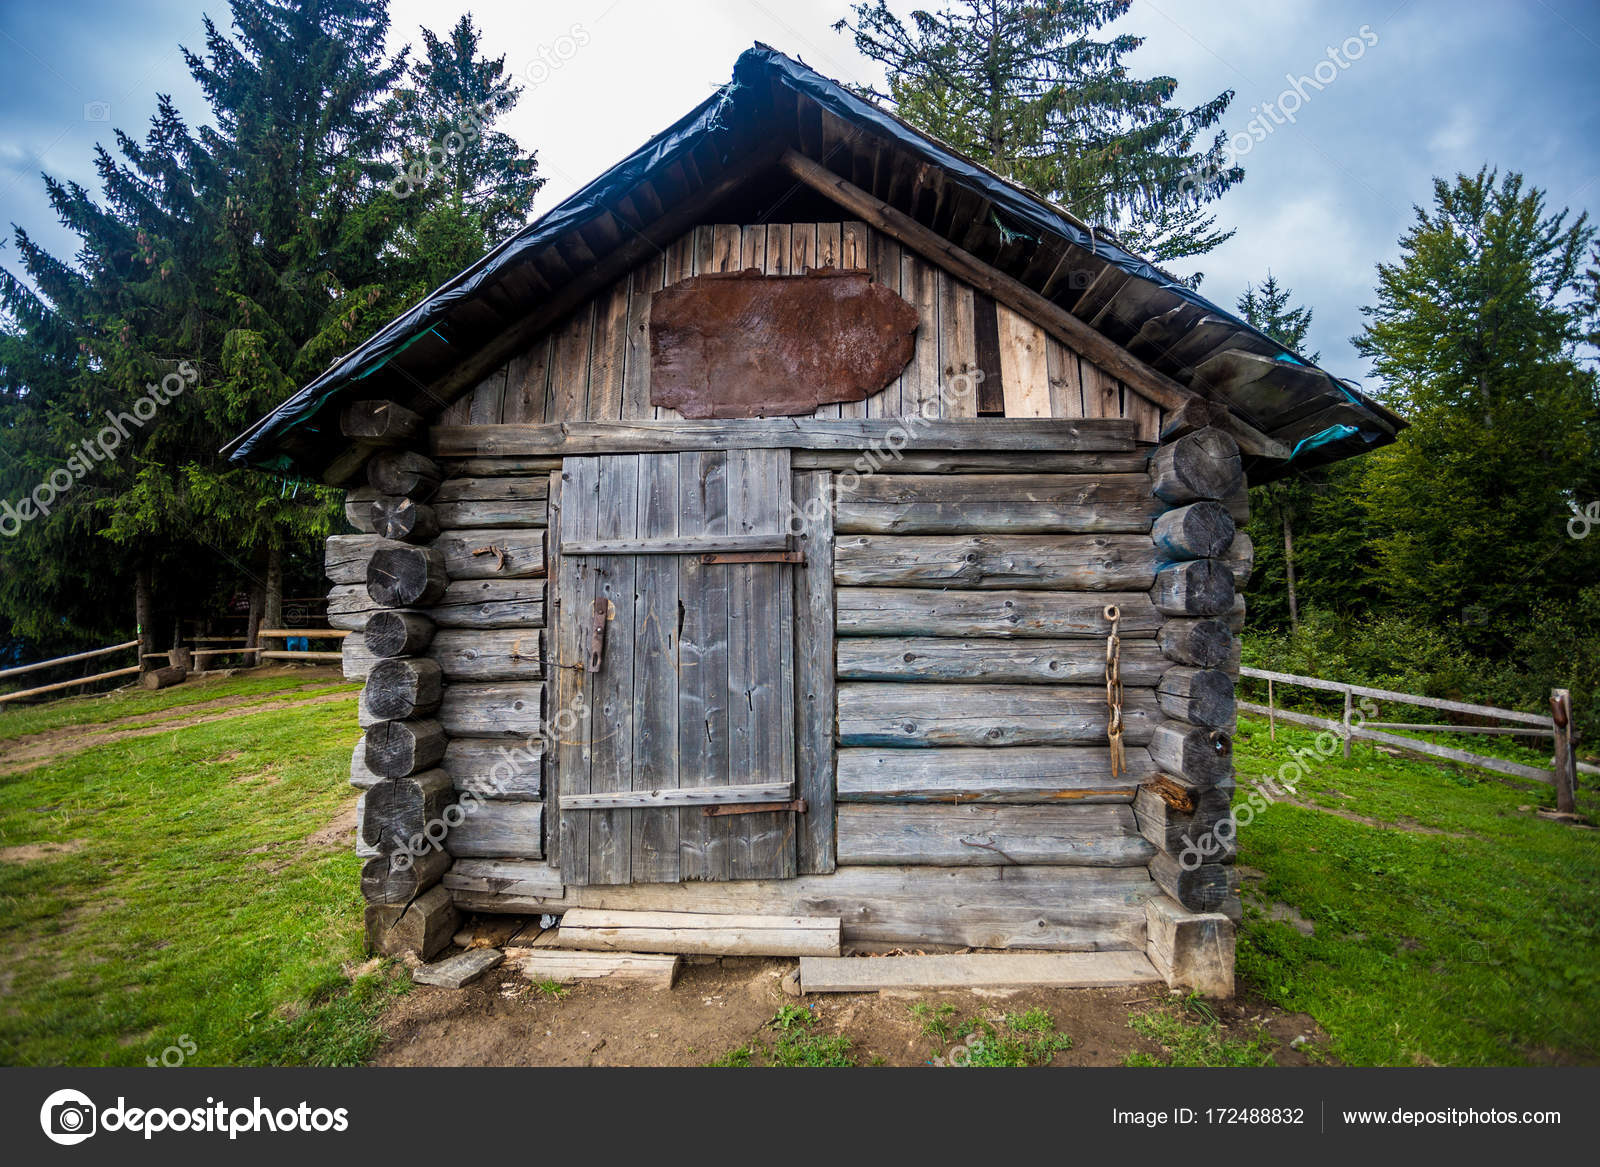 Old Small Wooden House On Top Of A Hill In The Forest Against A Dramatic Sky Background Stock Photo C Svetikpash Mail Ru 172488832